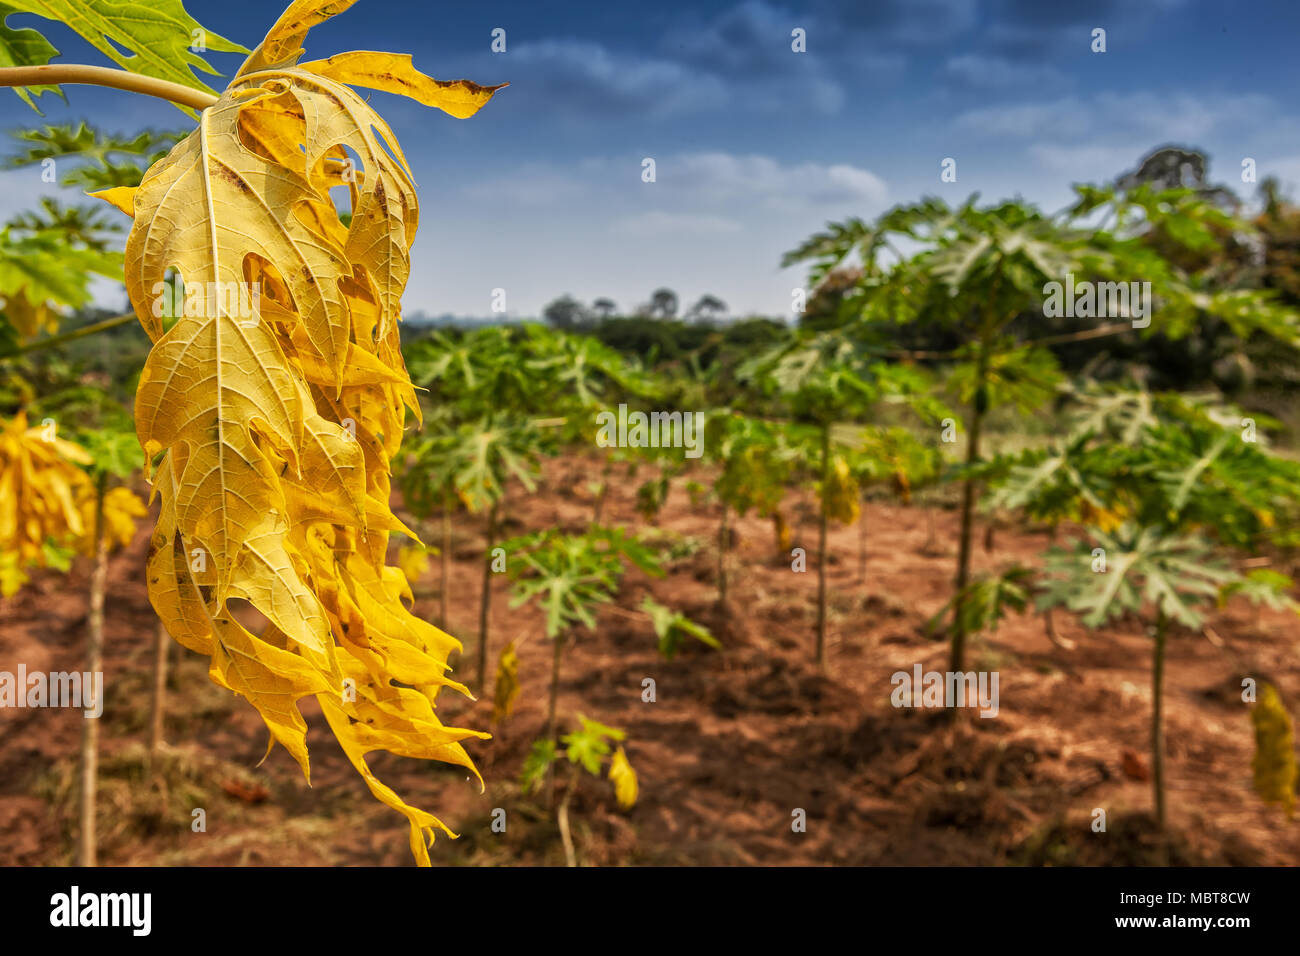 Dry and yellow leaf in agriculture field. Stock Photo